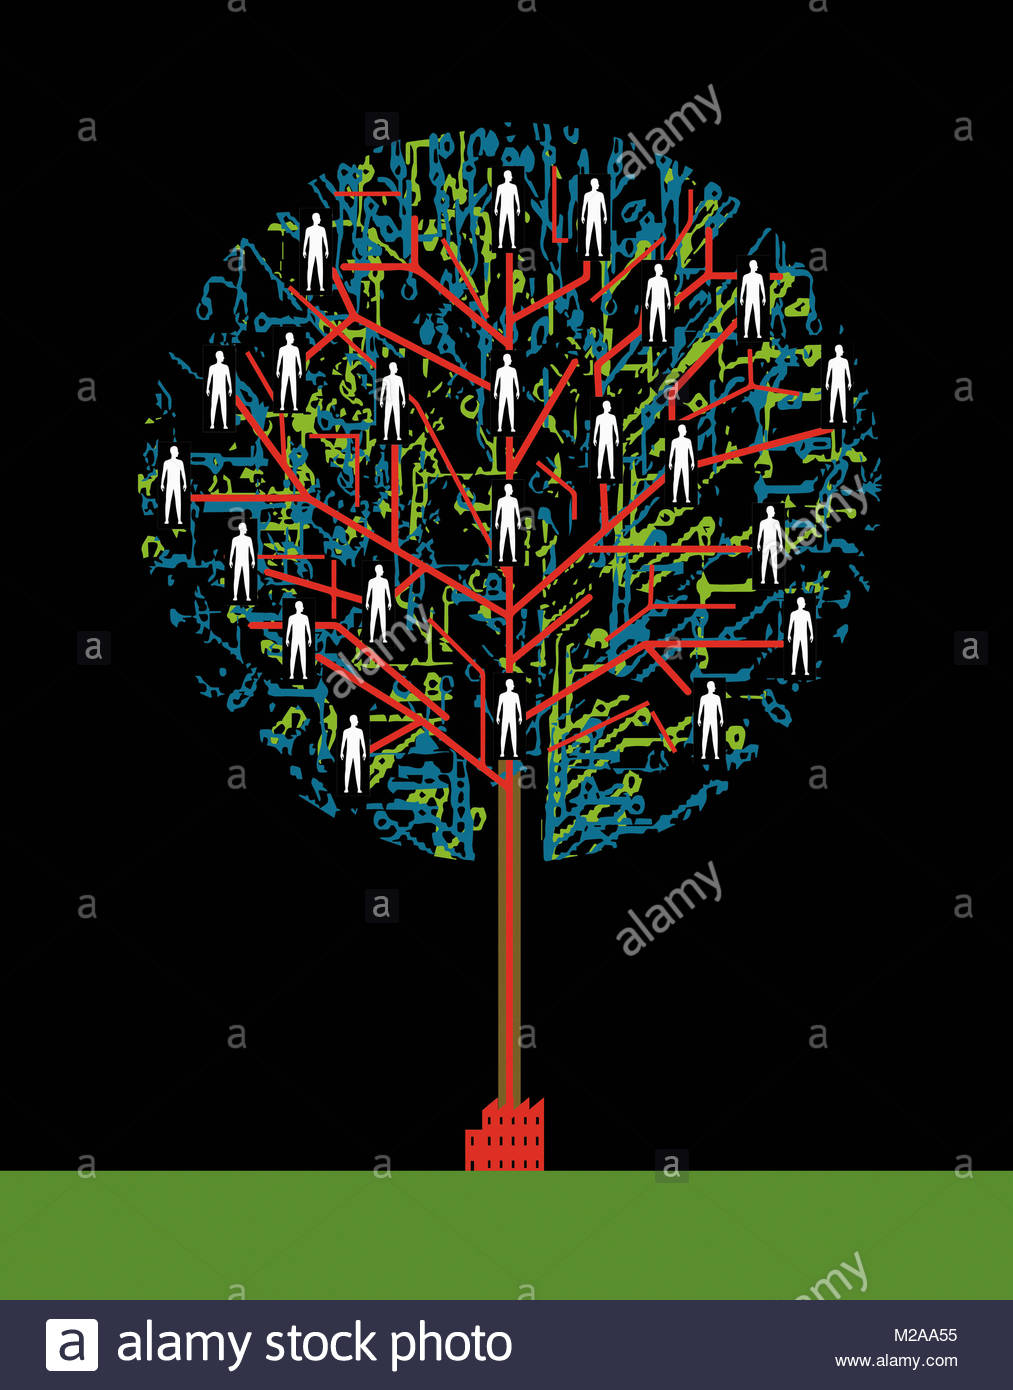 People connected in network tree growing from factory - Stock Image